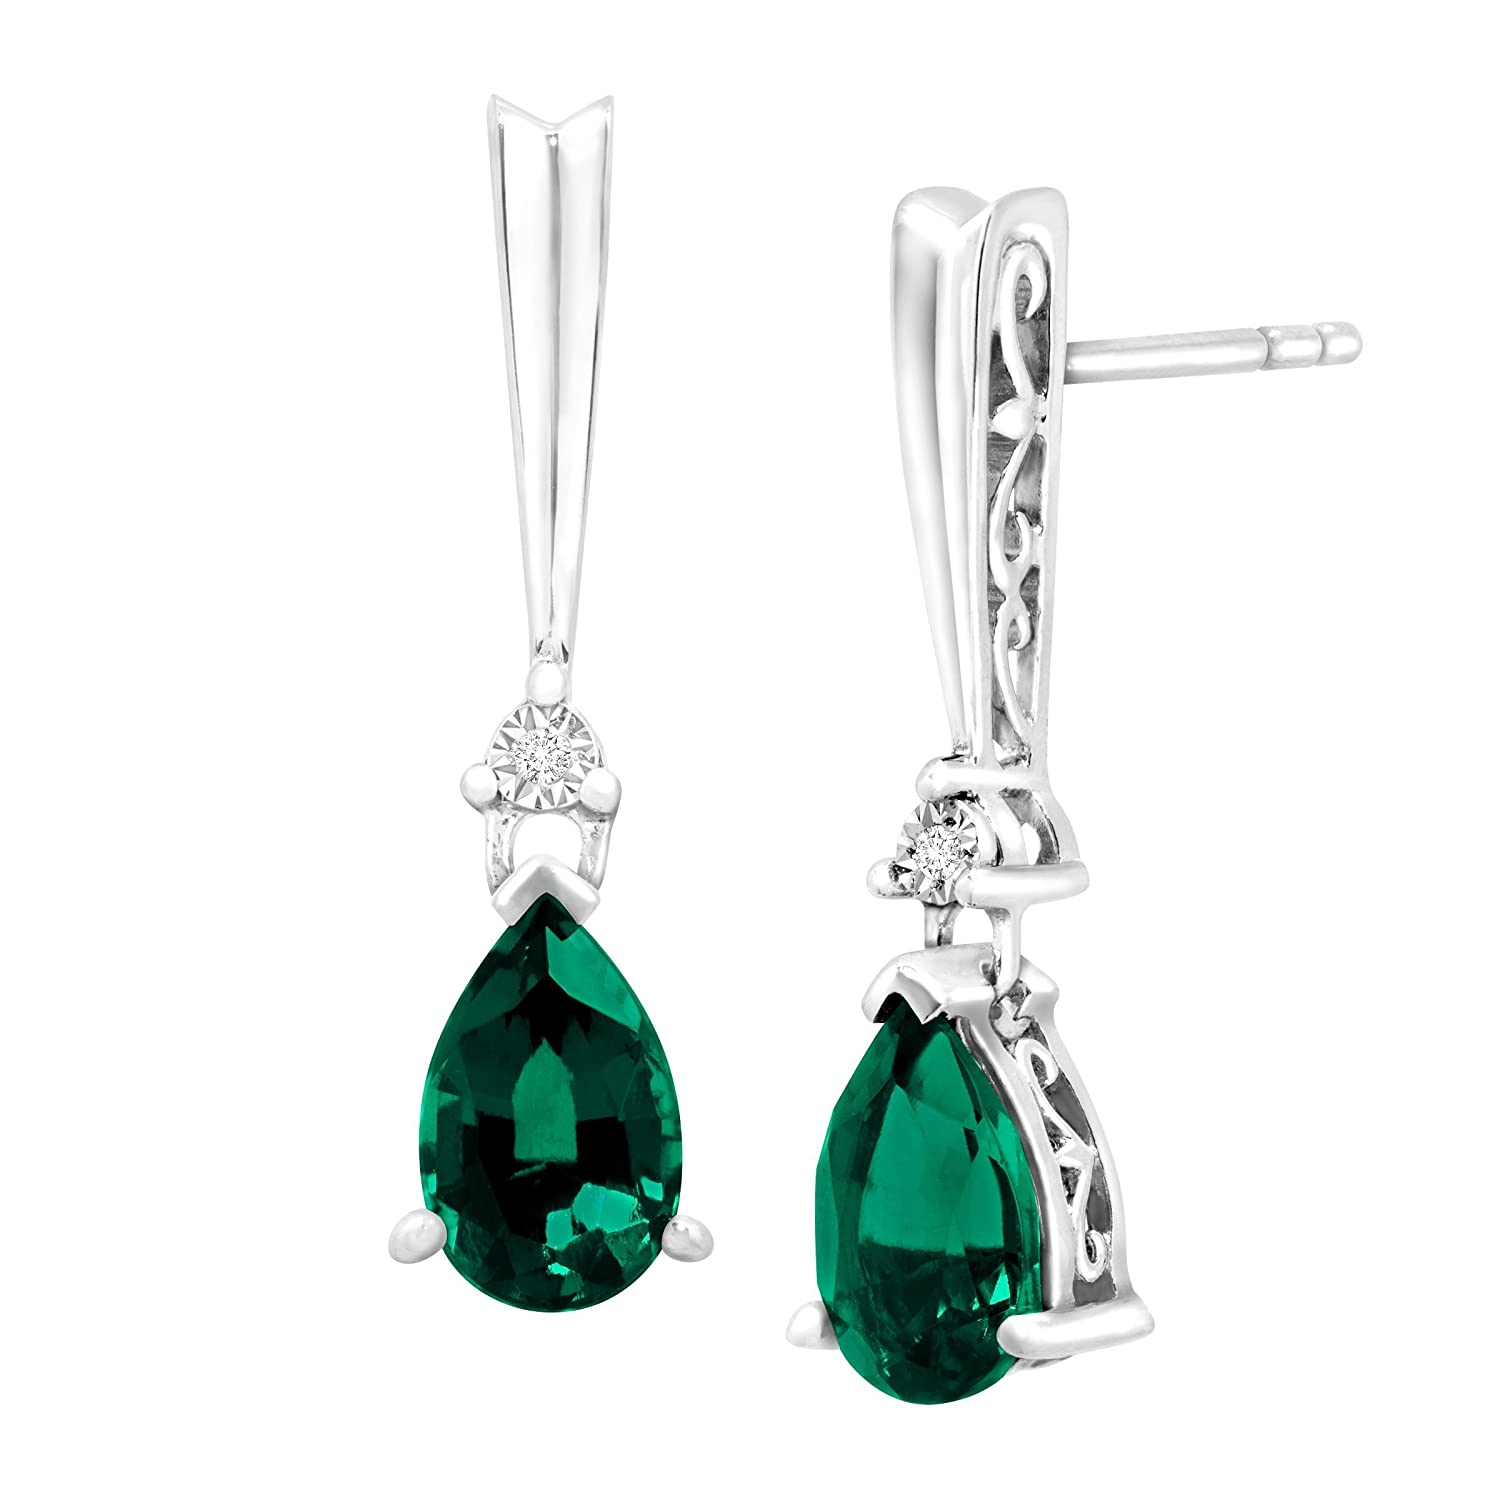 htm with solid price natural emerald emeralds p stud gold earrings earring list